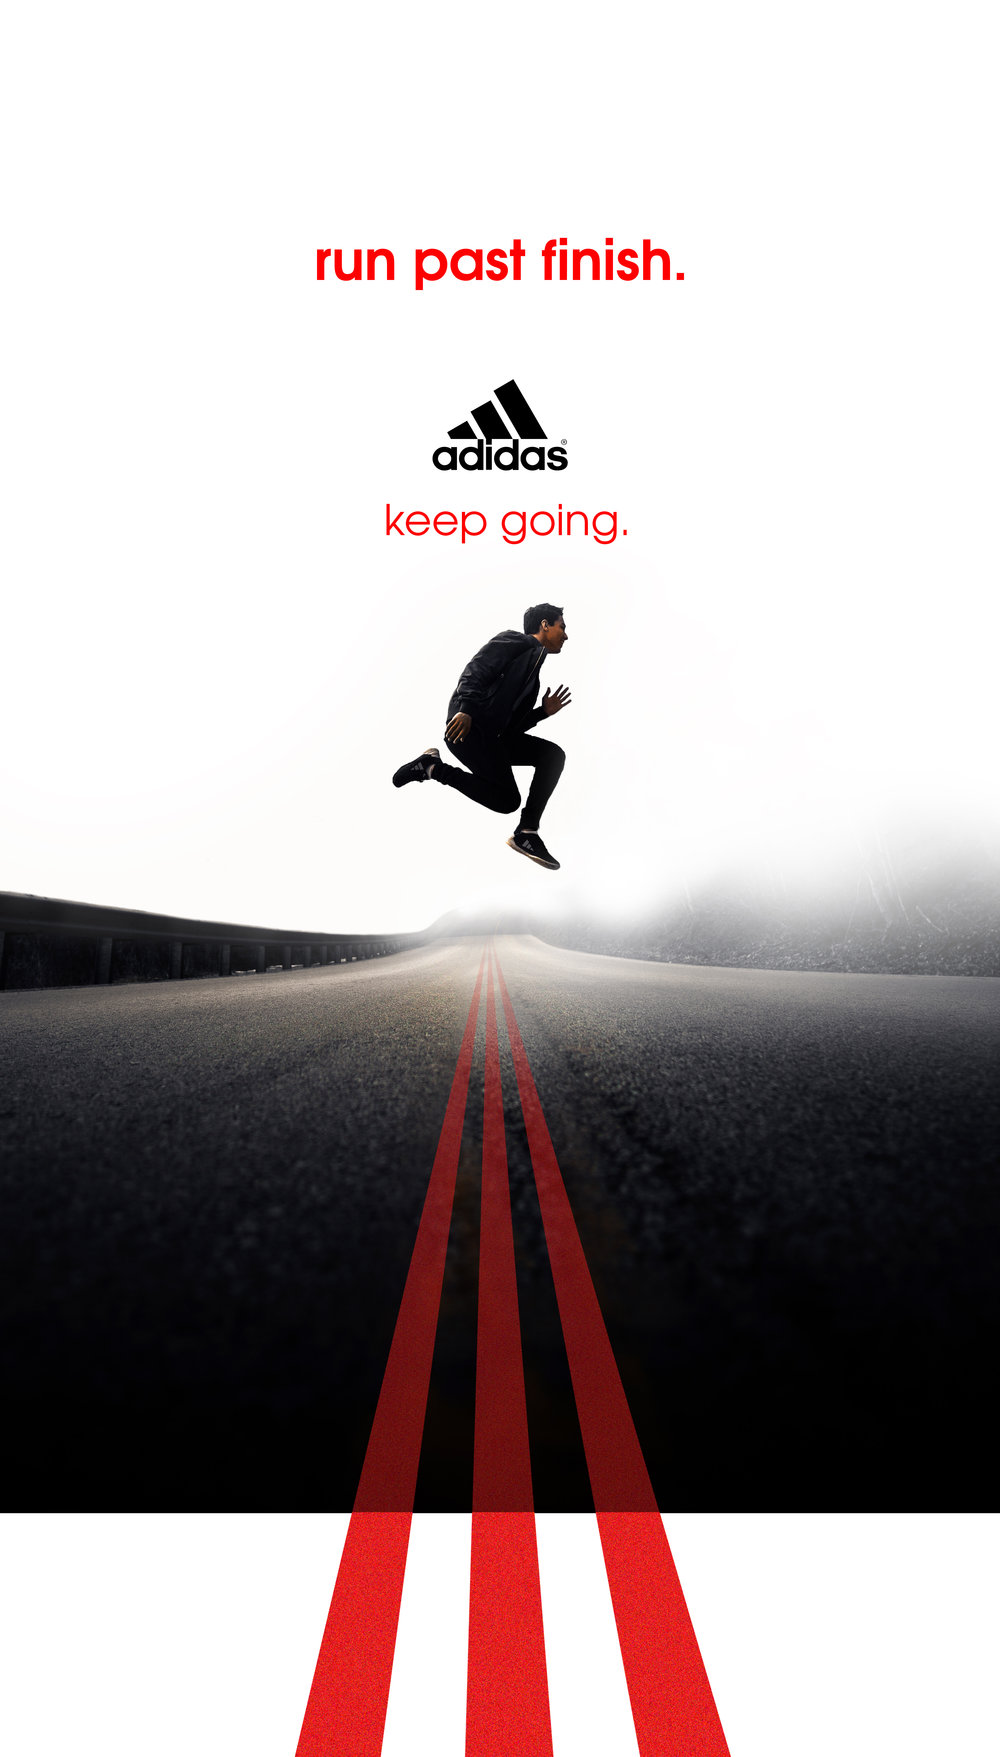 Adidas Ad Campaign Run Past Finish Mel Blanchard Gong.jpg